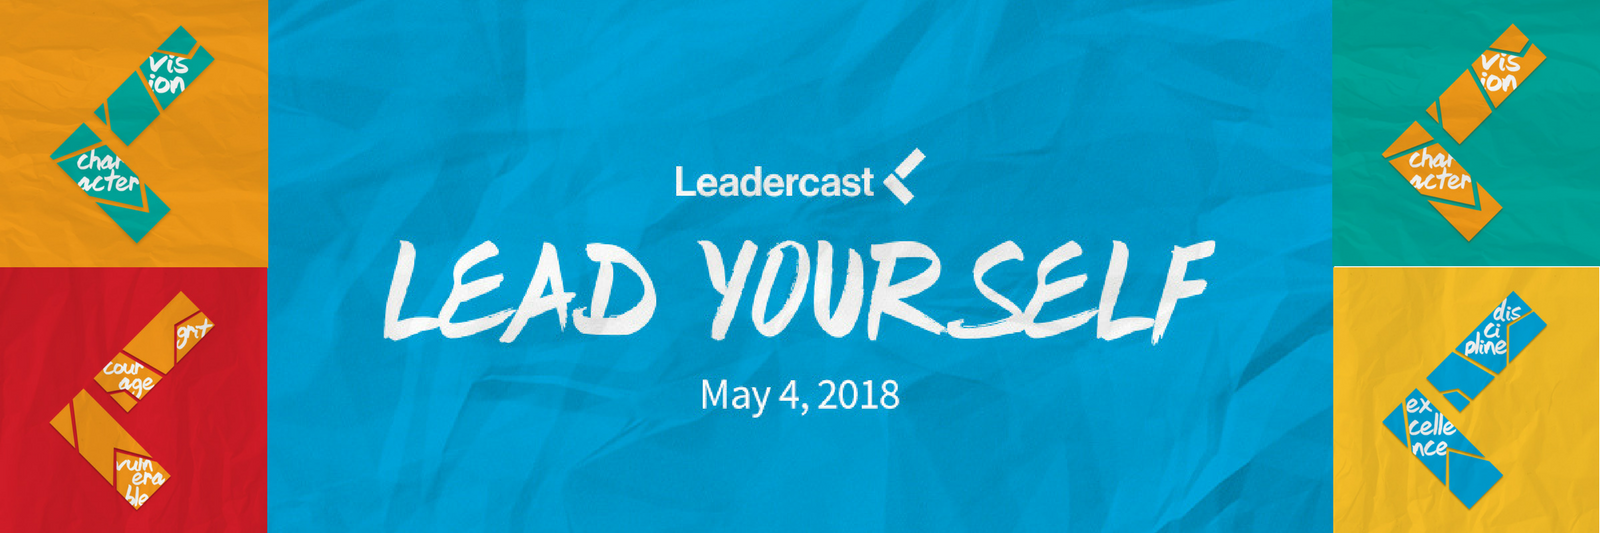 Leadercast-homepage-banner.png